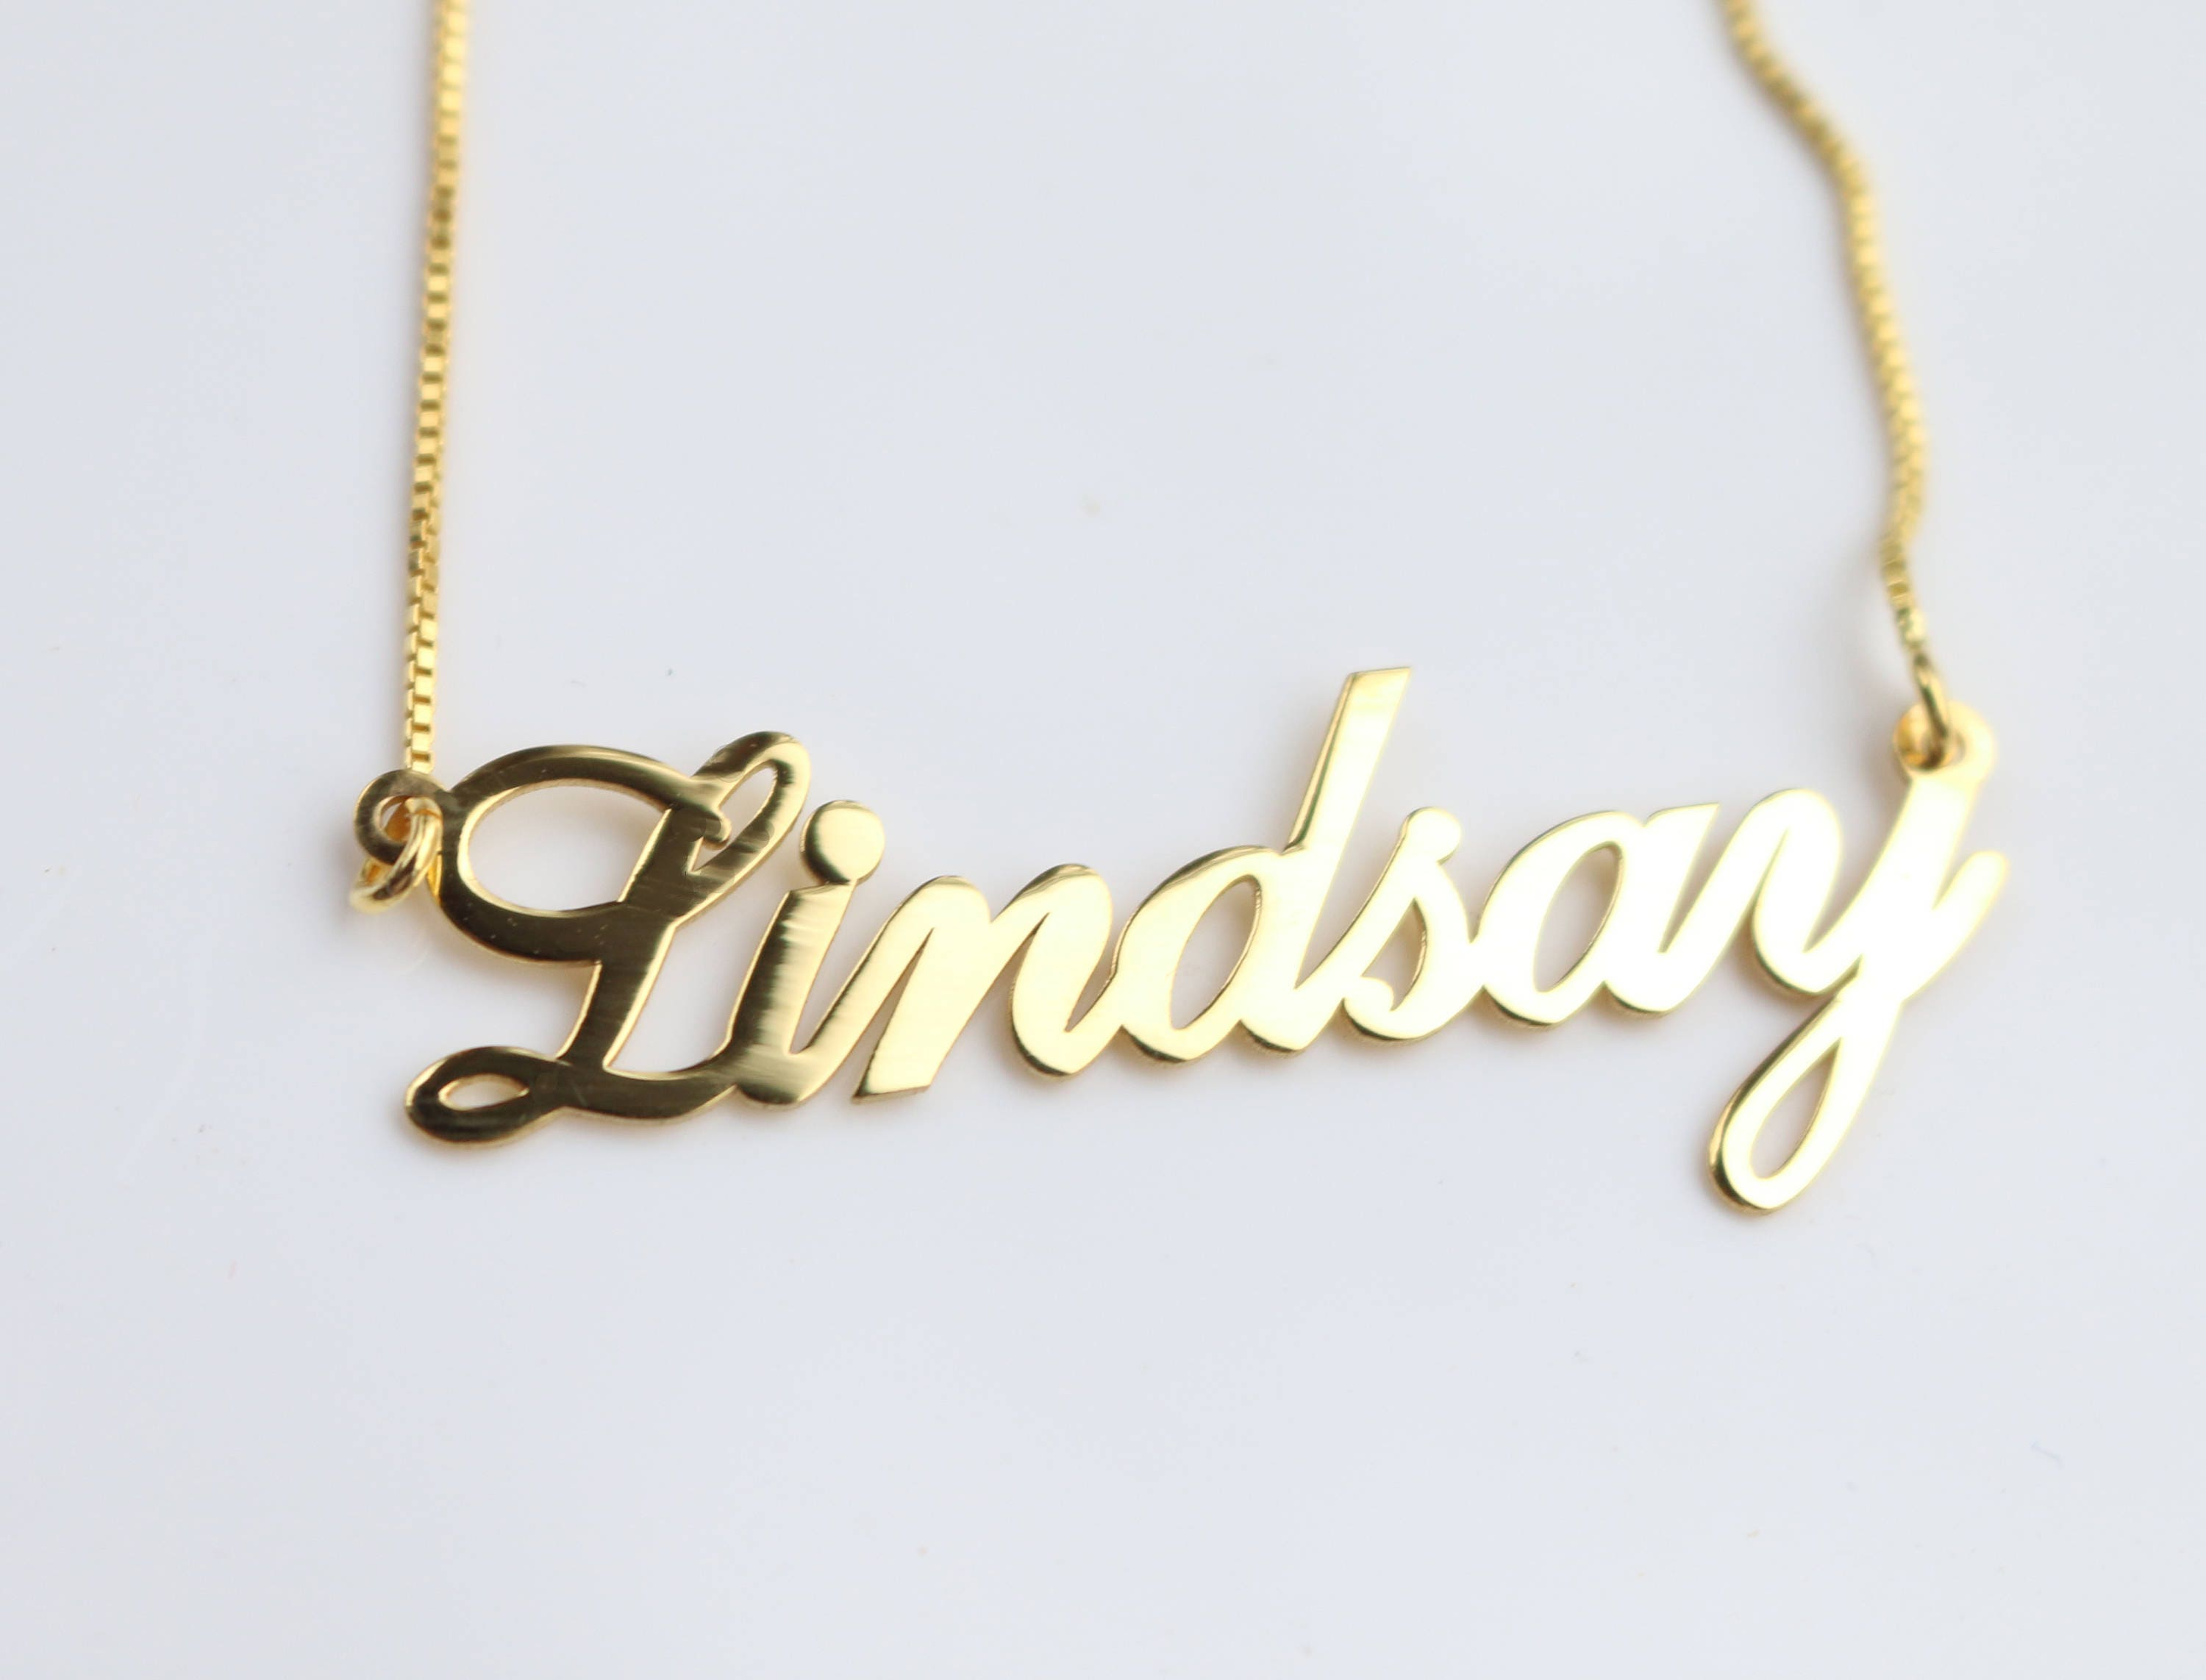 roll in with cursive v larger over plate silver gold image necklace drag sterling zoom p to name